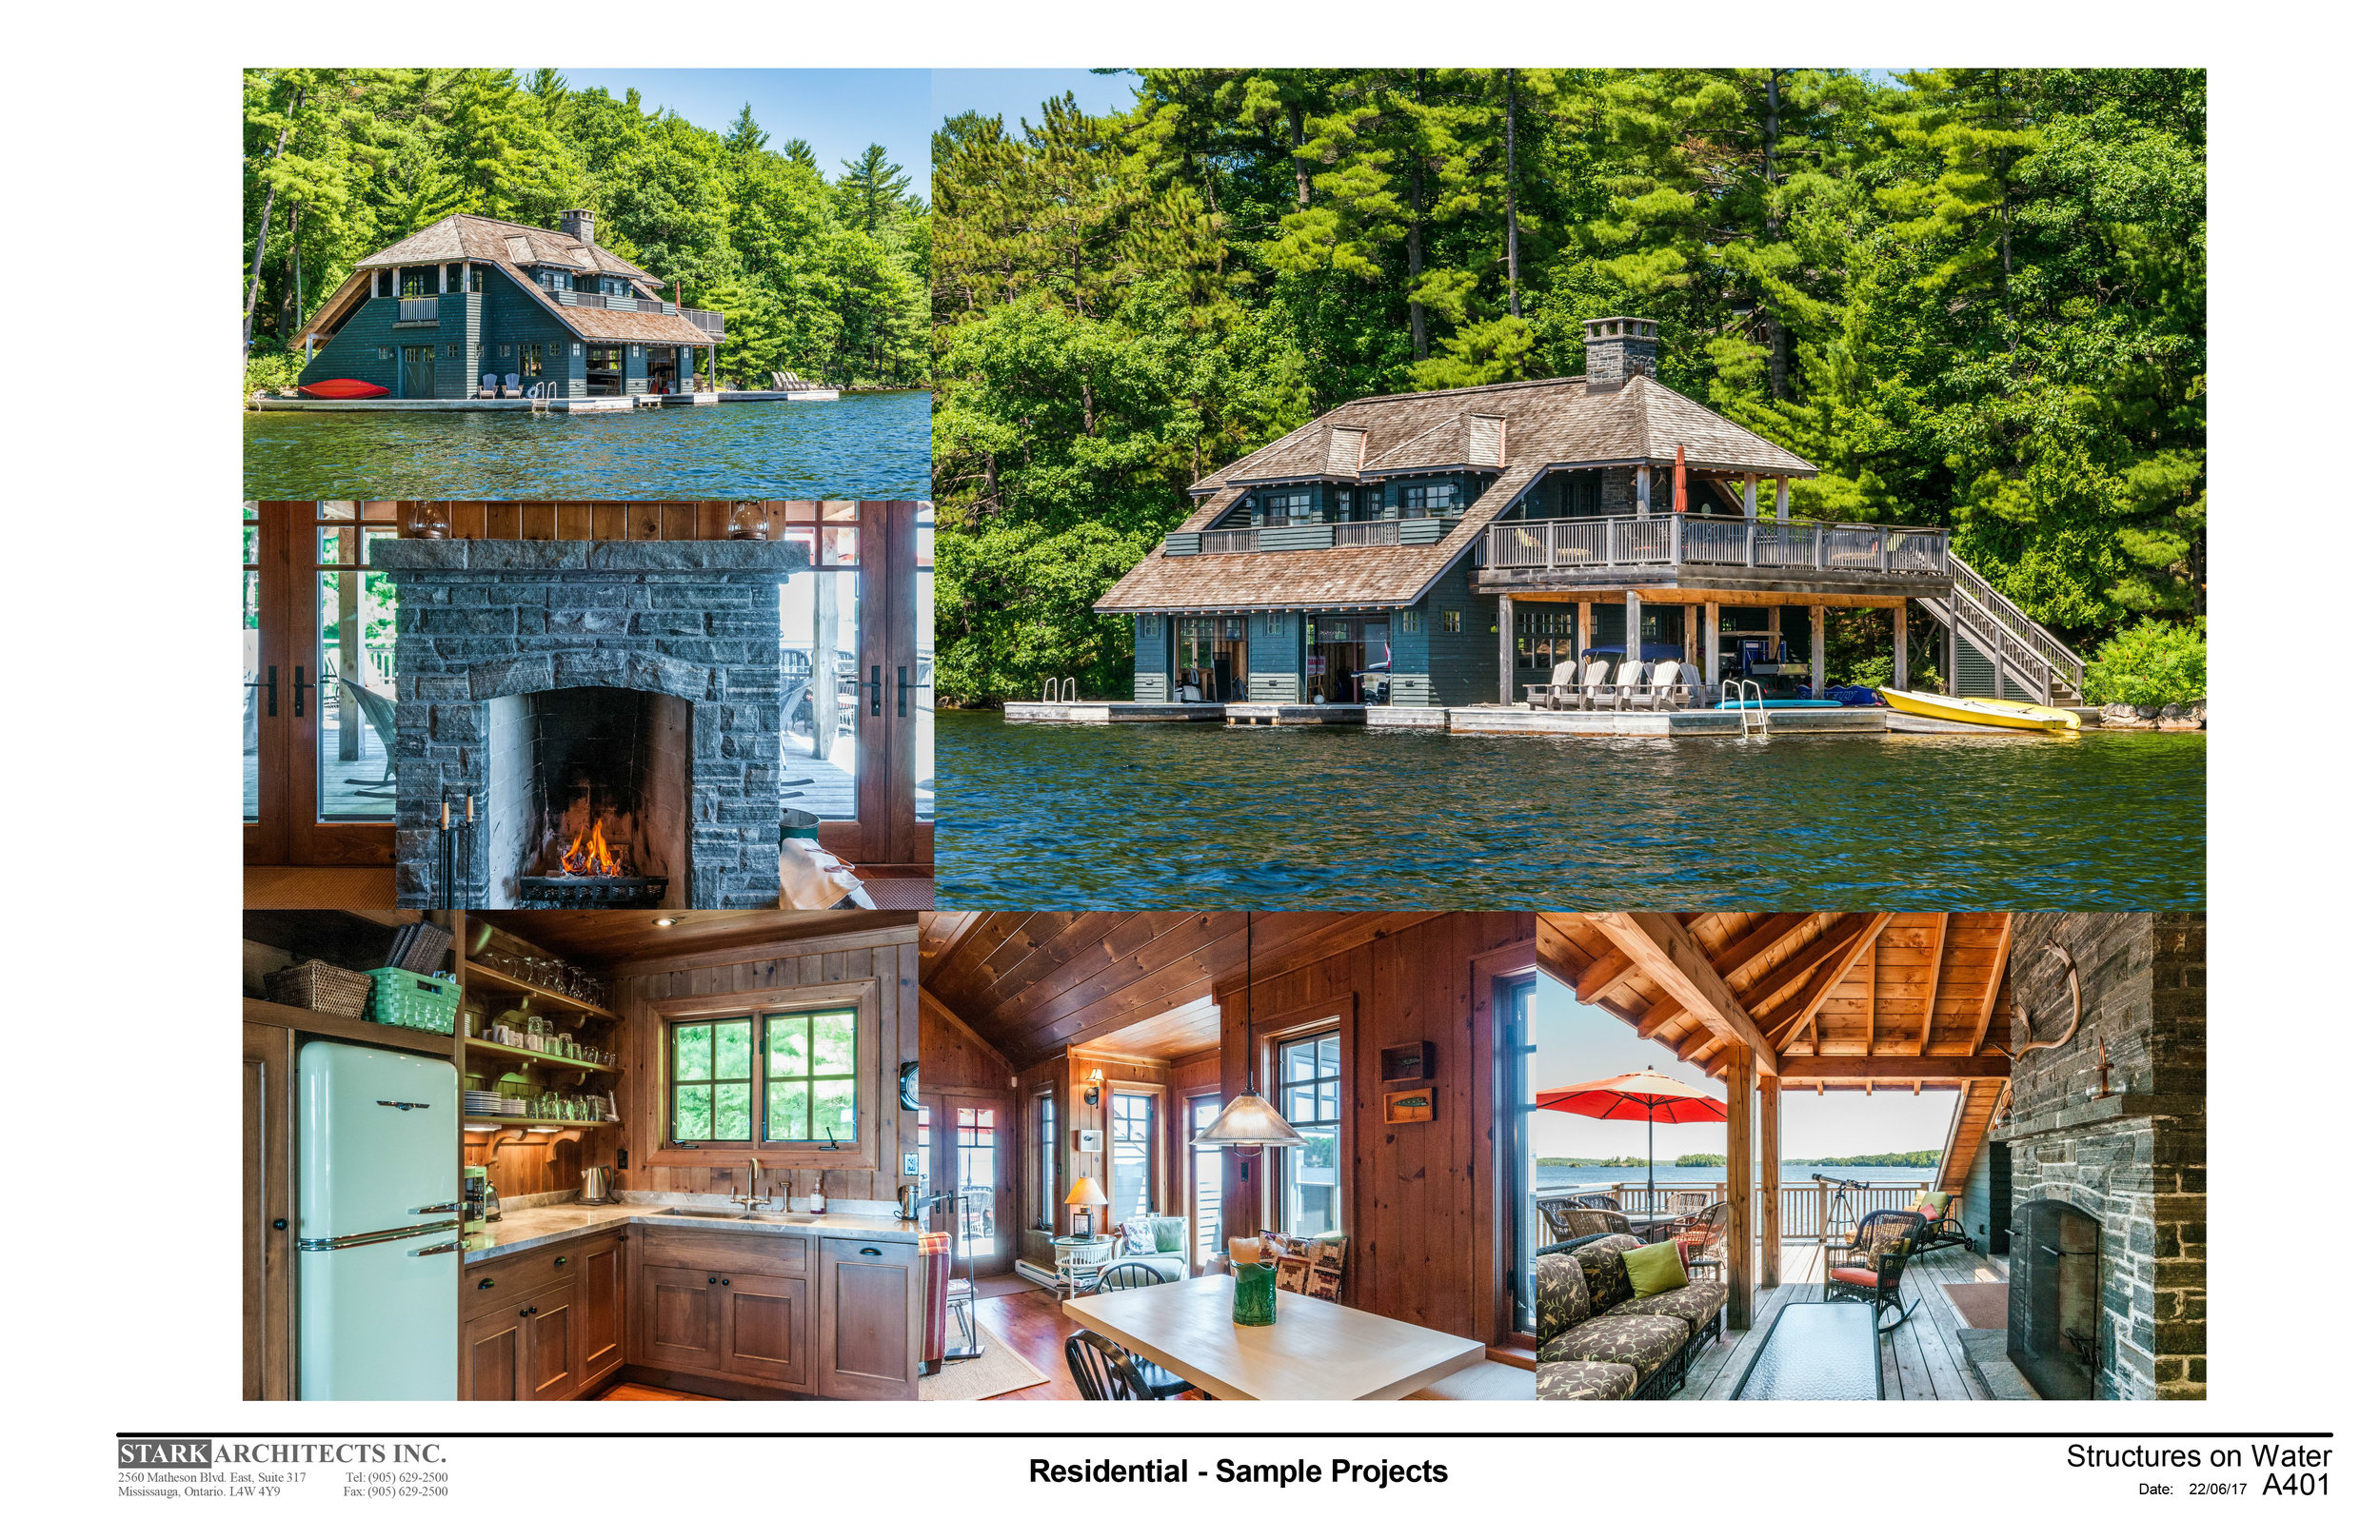 STARK ARCHITECTS INC - SAMPLE PROJECTS - RESIDENTIAL - 22-06-17 - A401.jpg